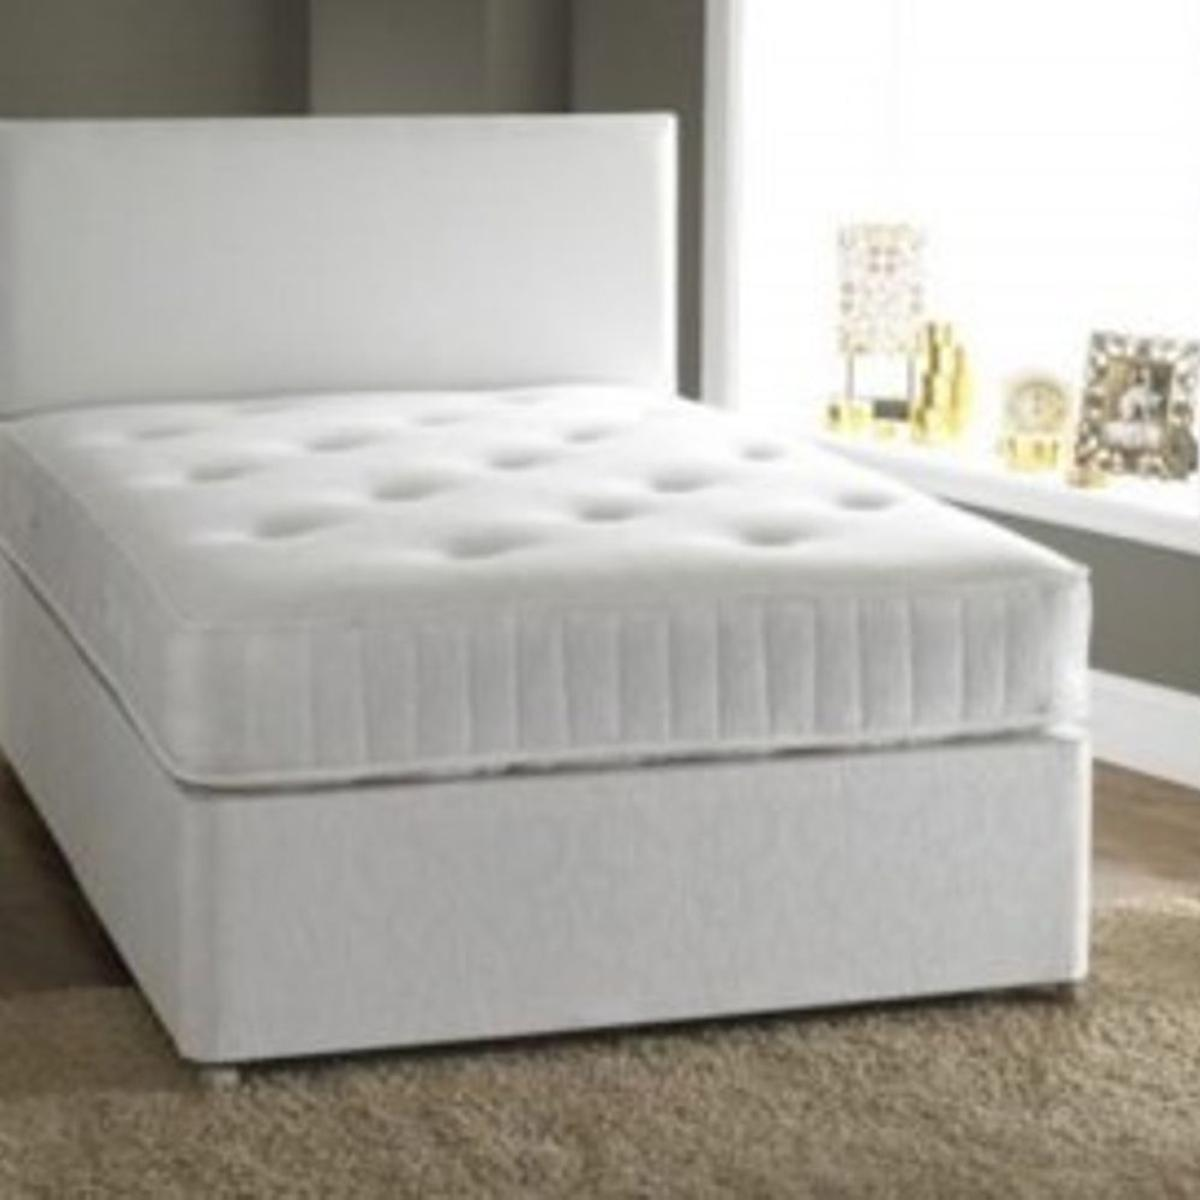 Picture of: Single Divan Beds Mattress In M5 3en Salford For 40 00 For Sale Shpock